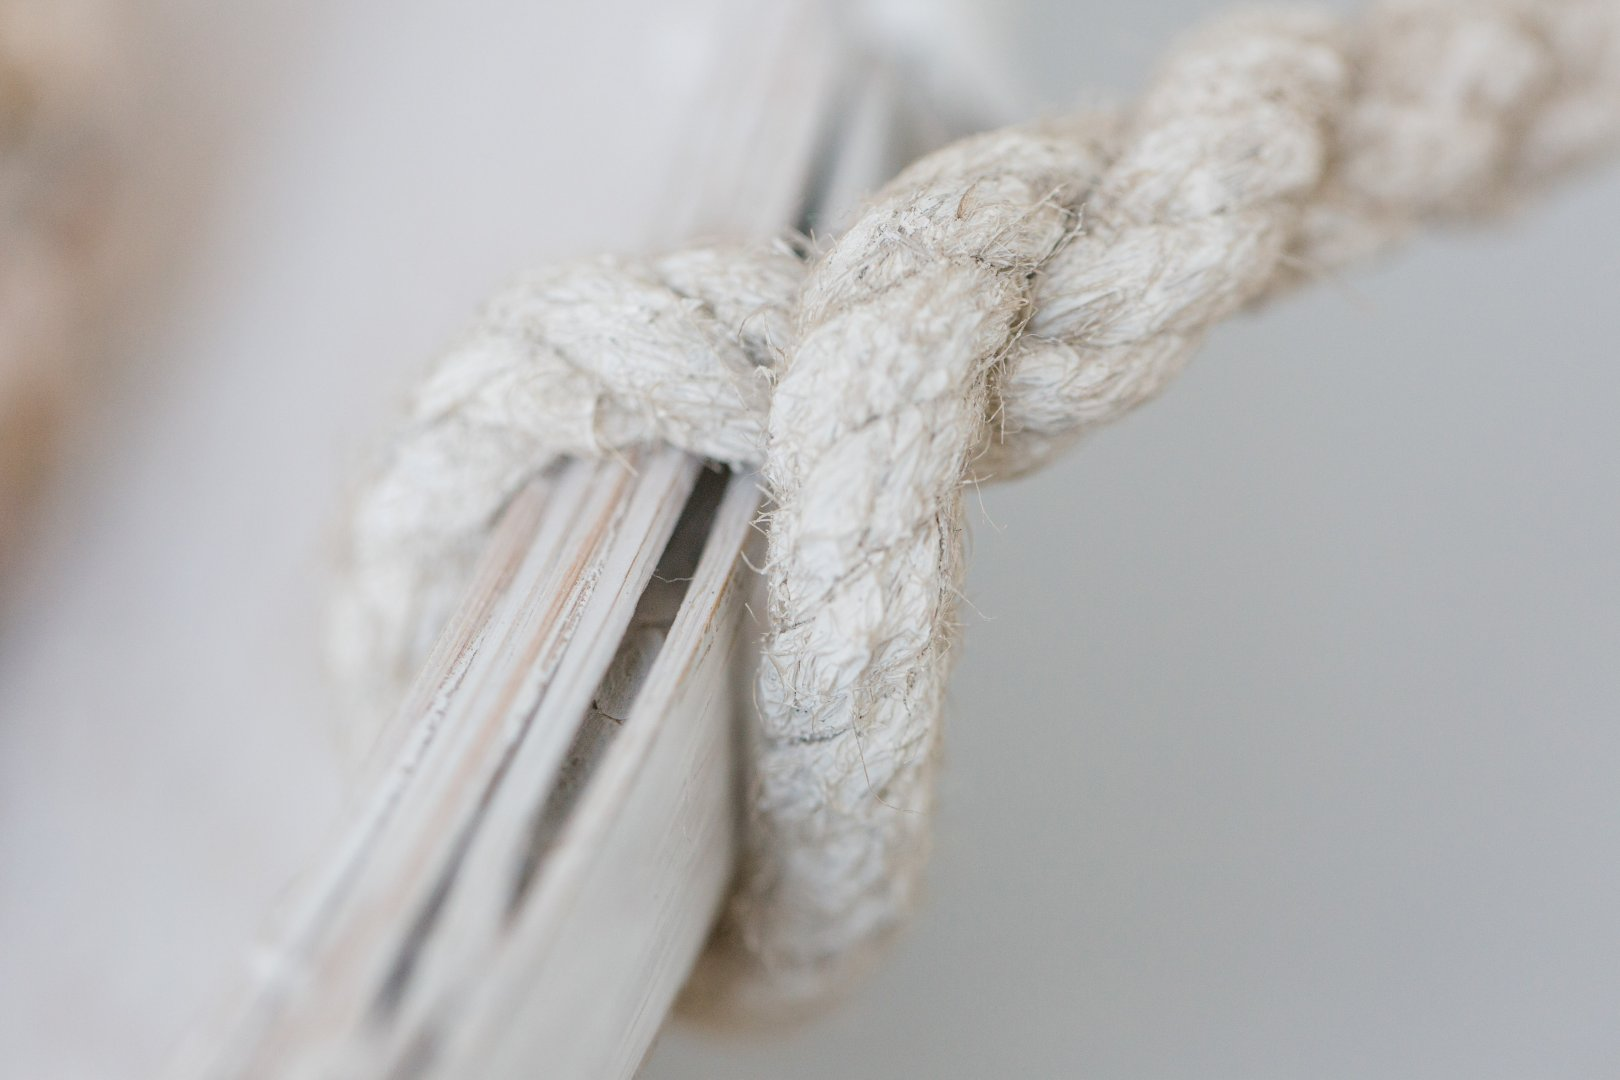 White Rope Wool Linens Textile Knot Thread Twine